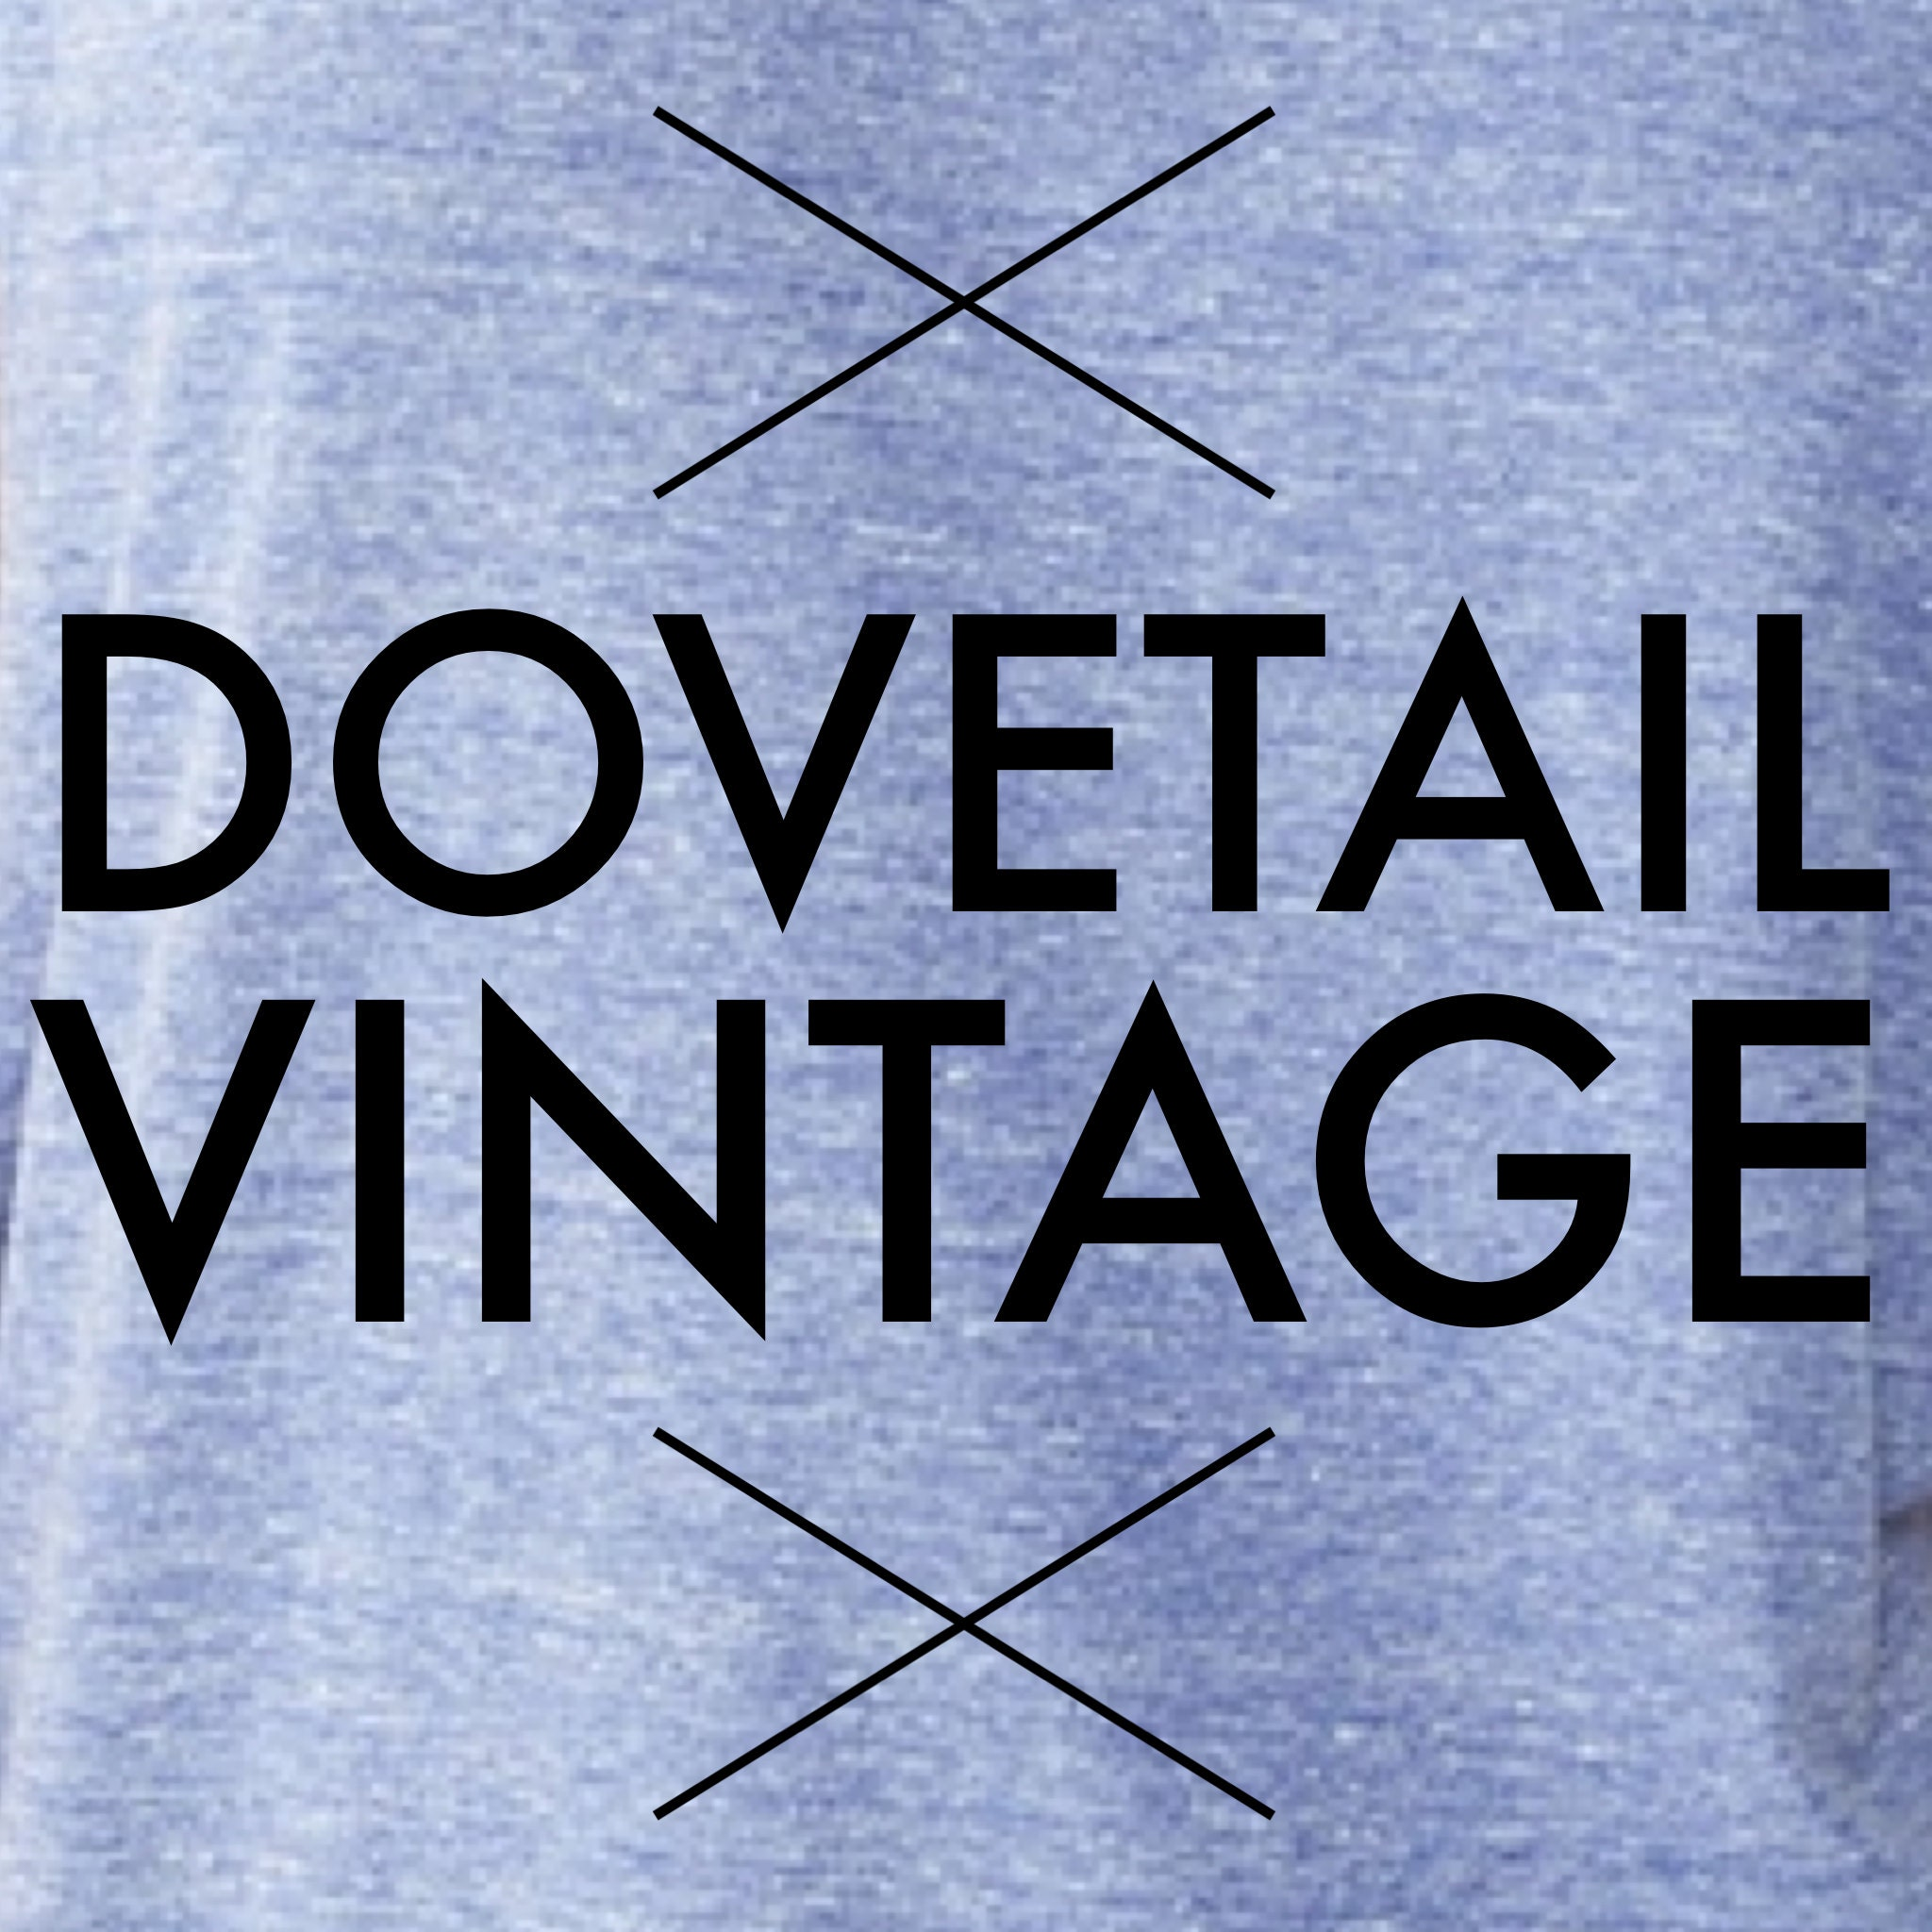 dovetails vintage. coupon code